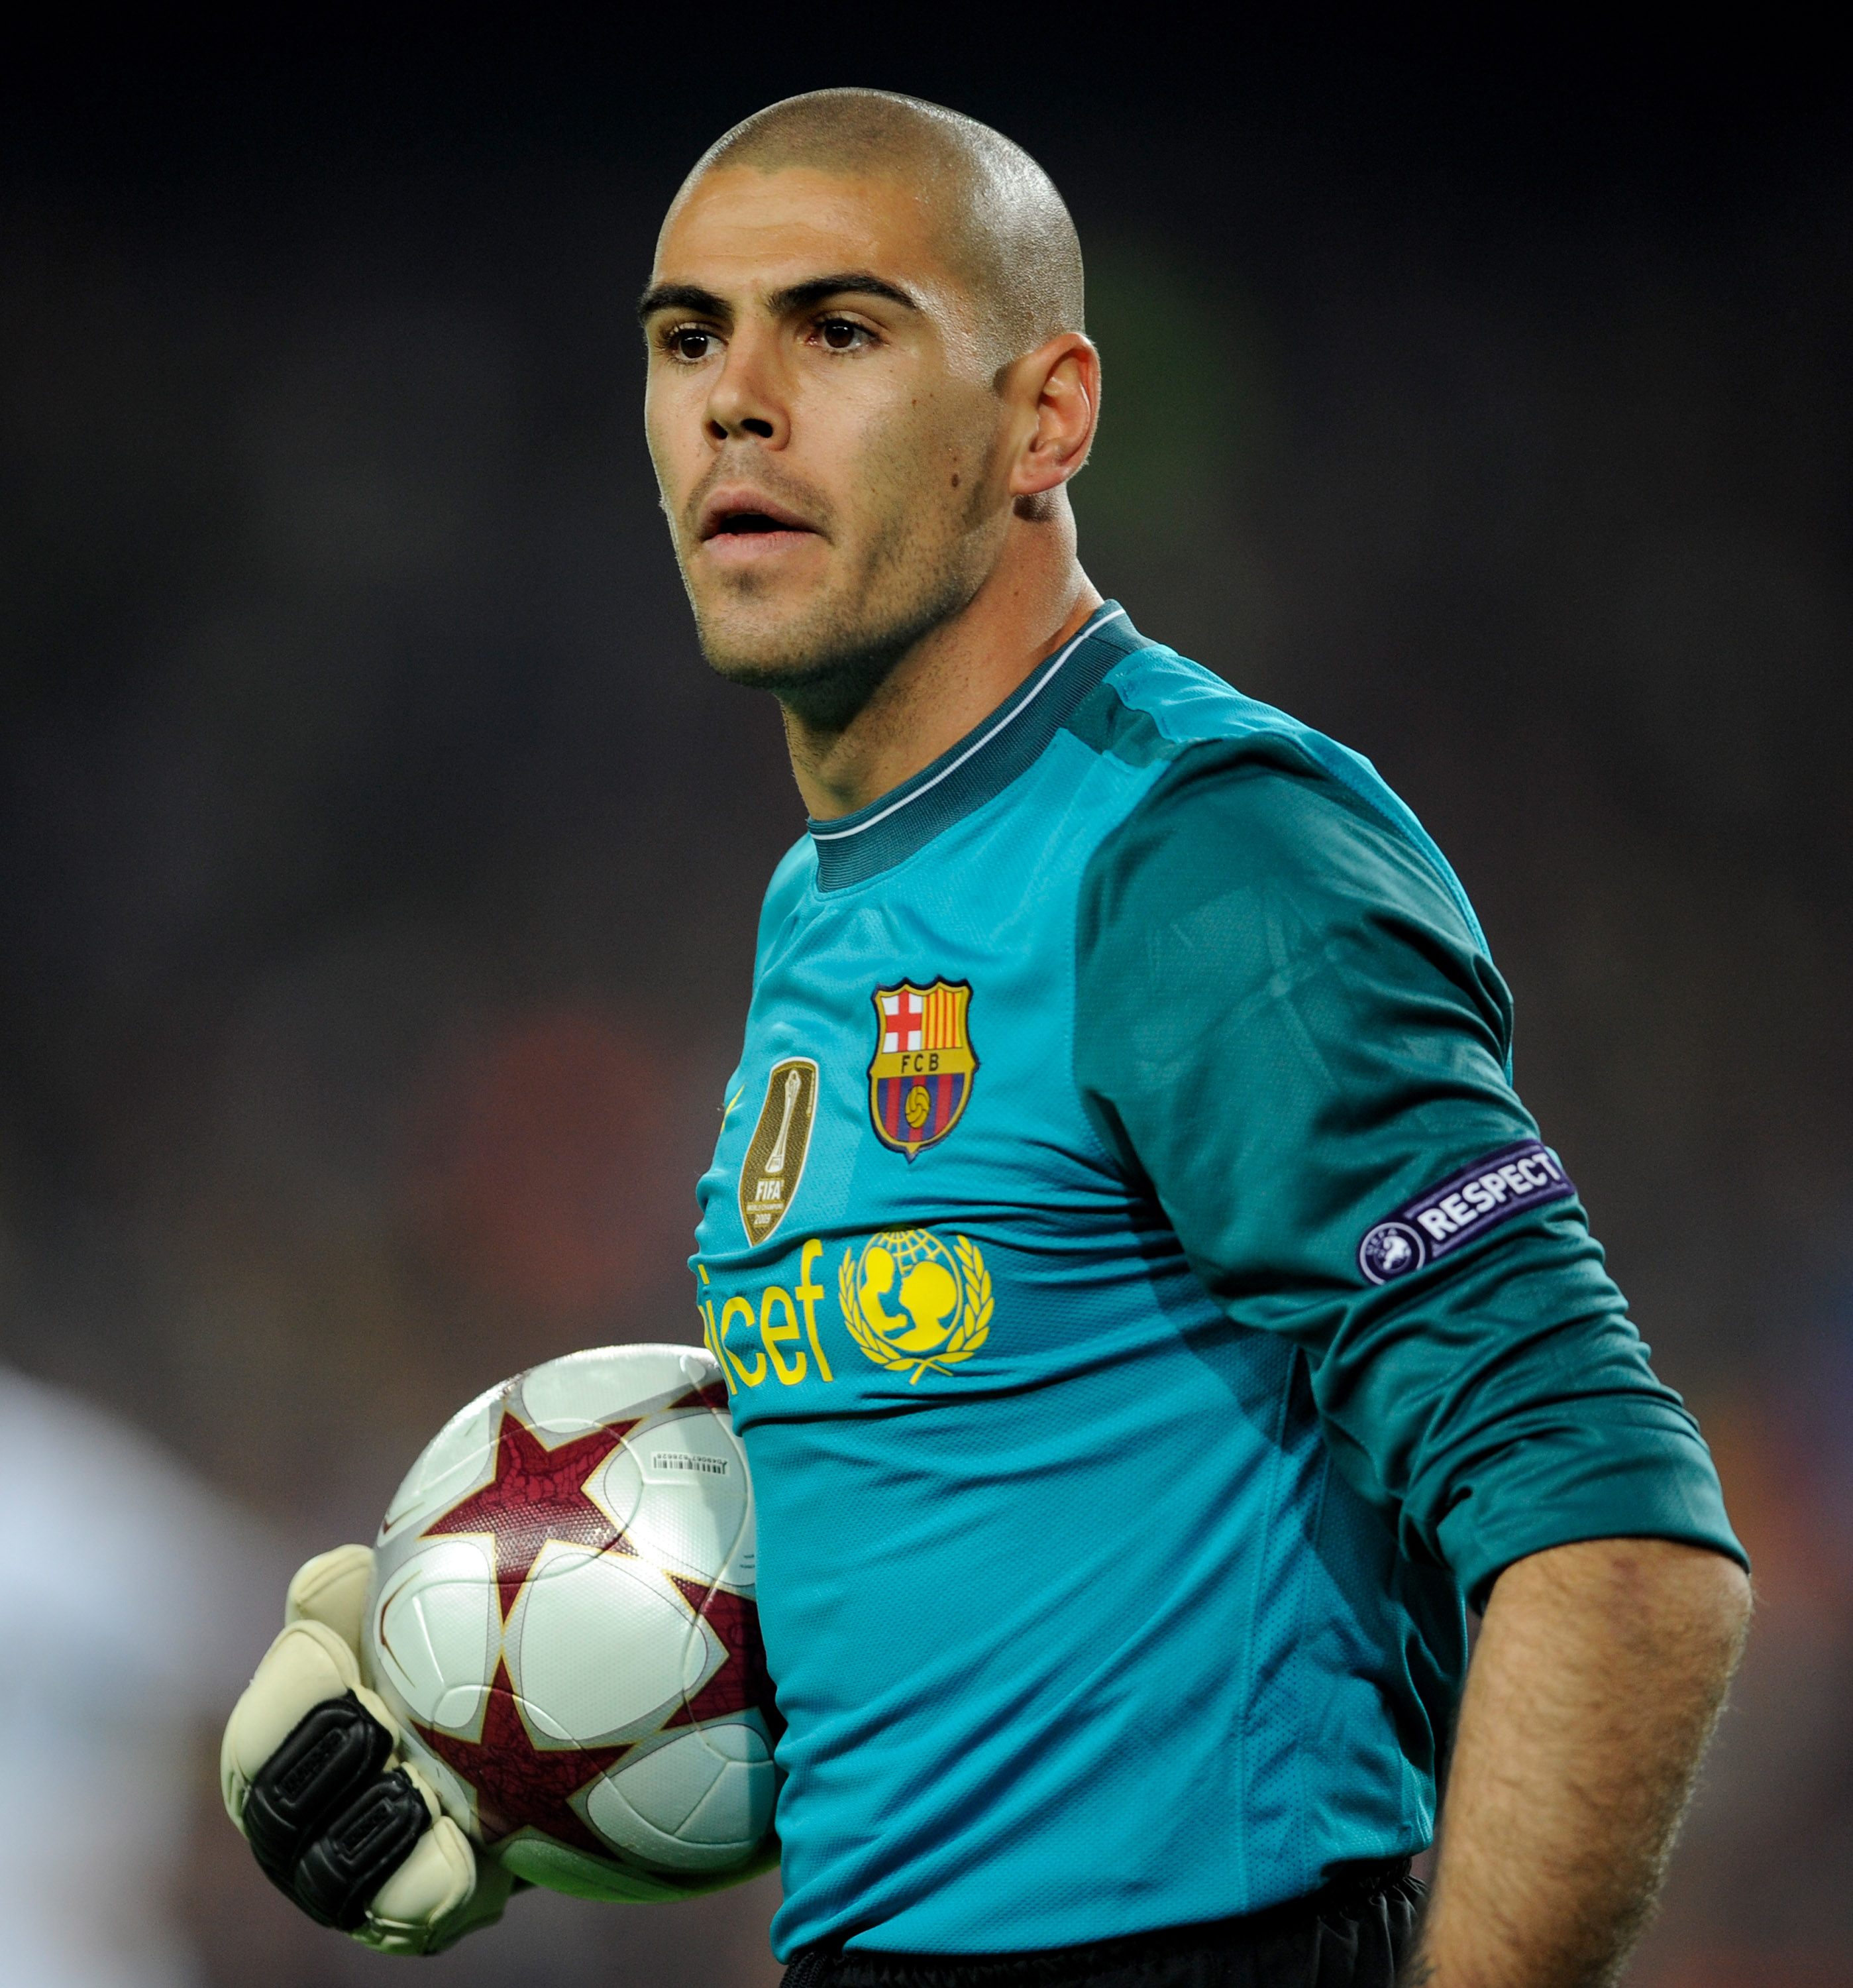 BARCELONA, SPAIN - APRIL 28: Victor Valdes of Barcelona looks on during the UEFA Champions League Semi Final Second Leg match between Barcelona and Inter Milan at Camp Nou on April 28, 2010 in Barcelona, Spain.  (Photo by Michael Regan/Getty Images)